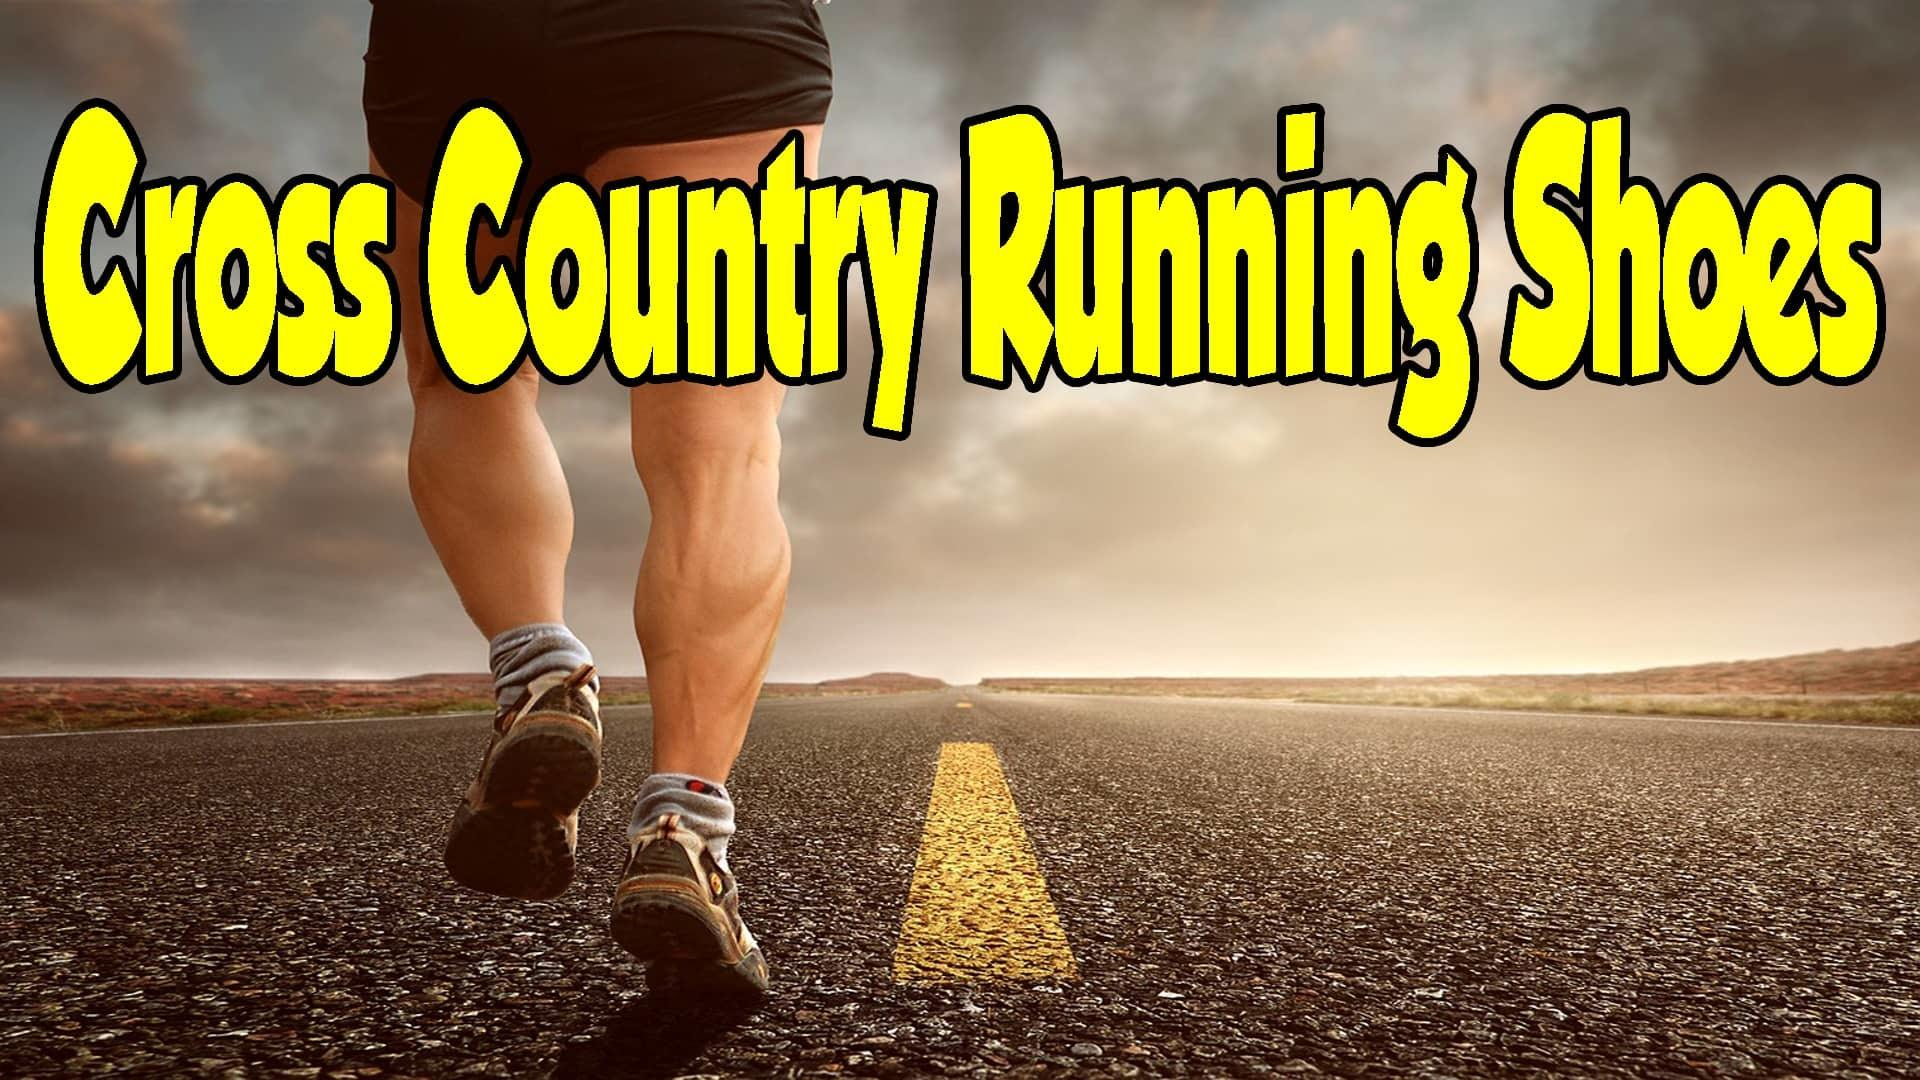 What Are The Best Cross Country Running Shoes In 2018